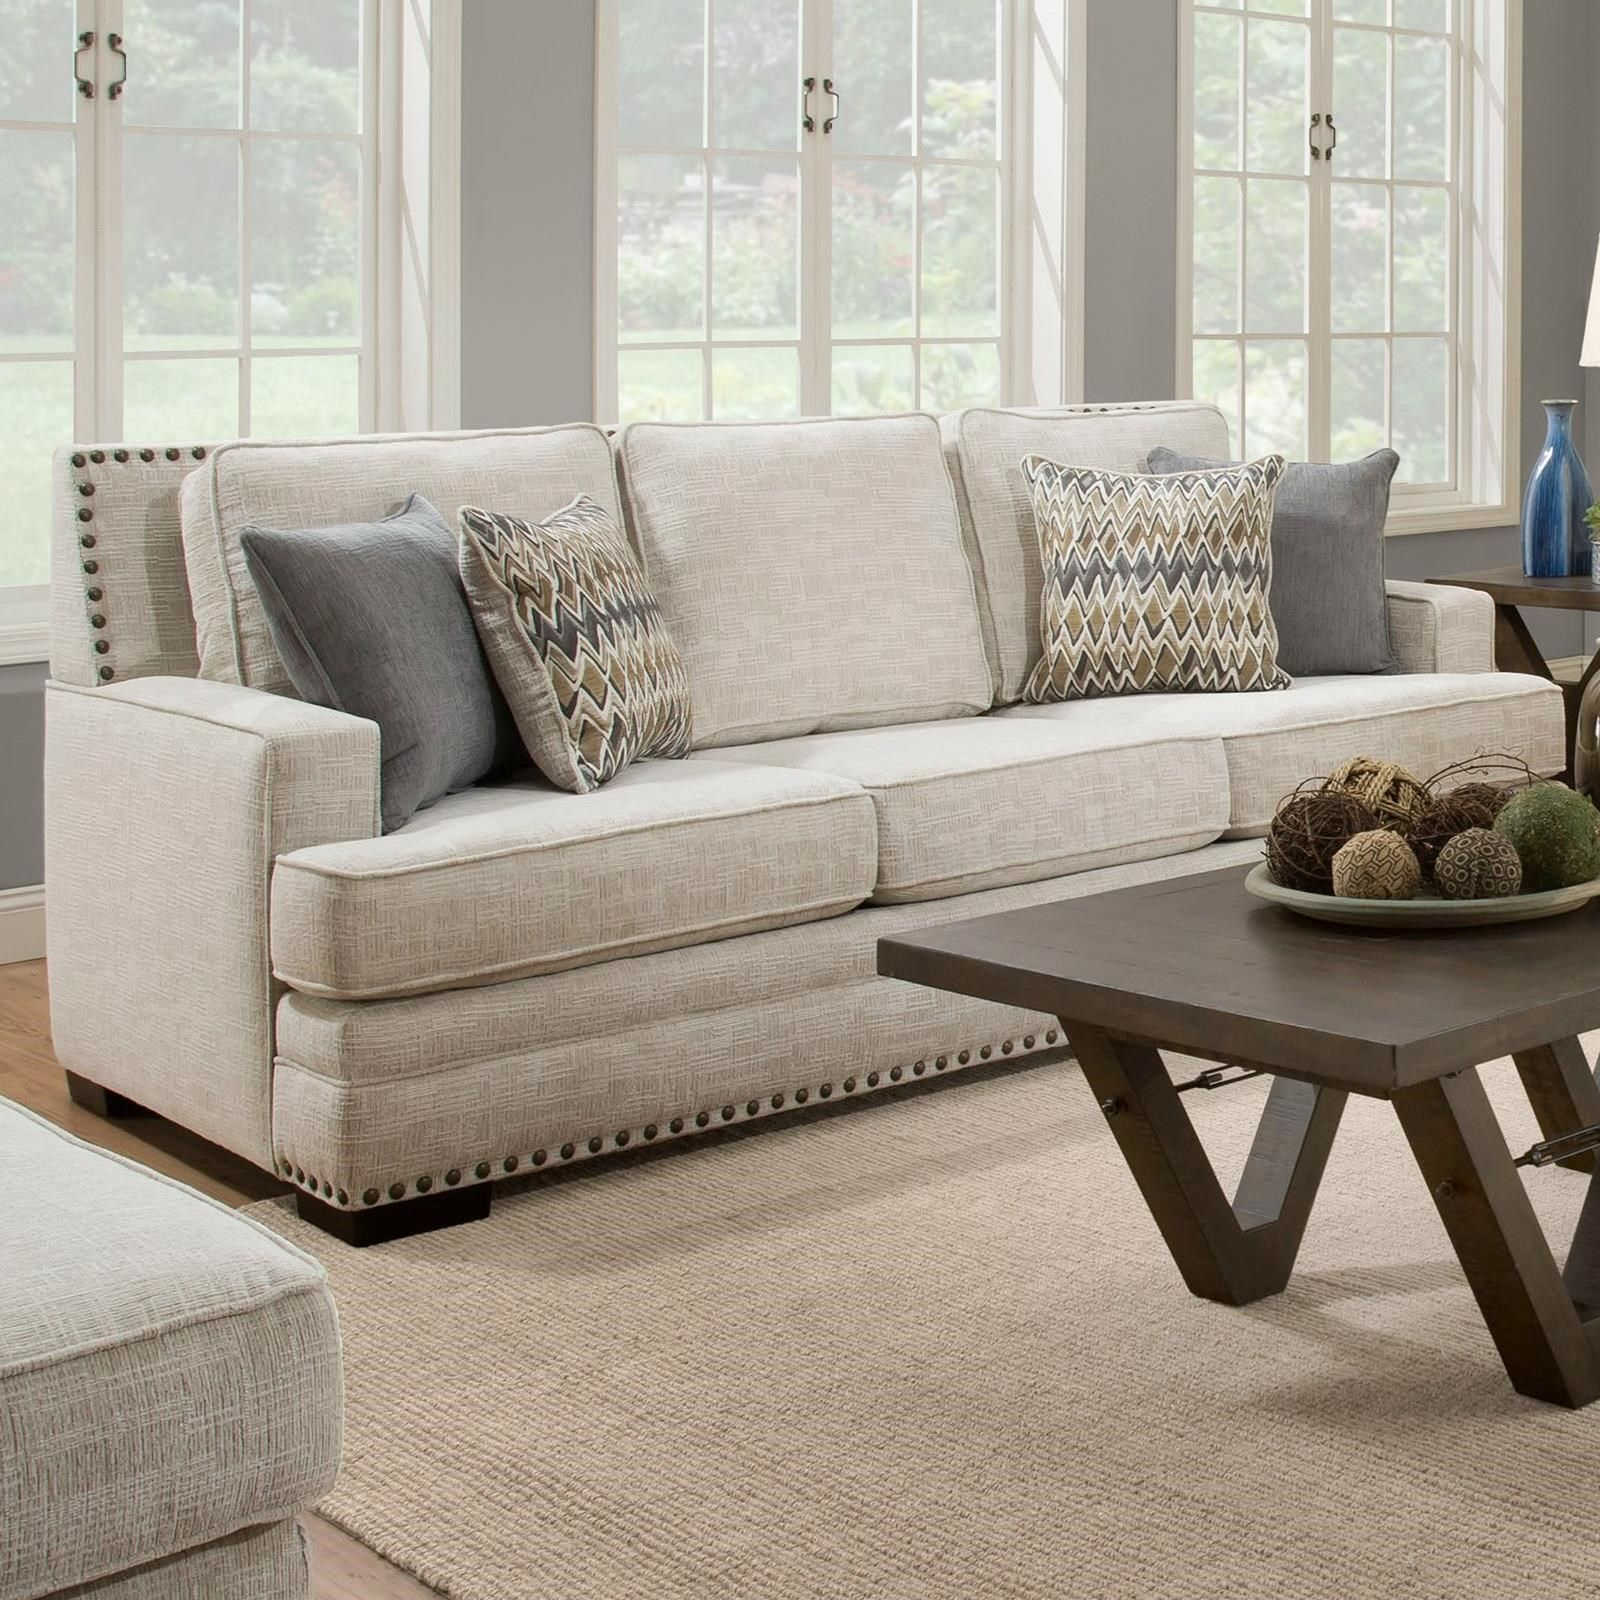 488 Sofa By Albany Living Room Decor Inspiration Living Room